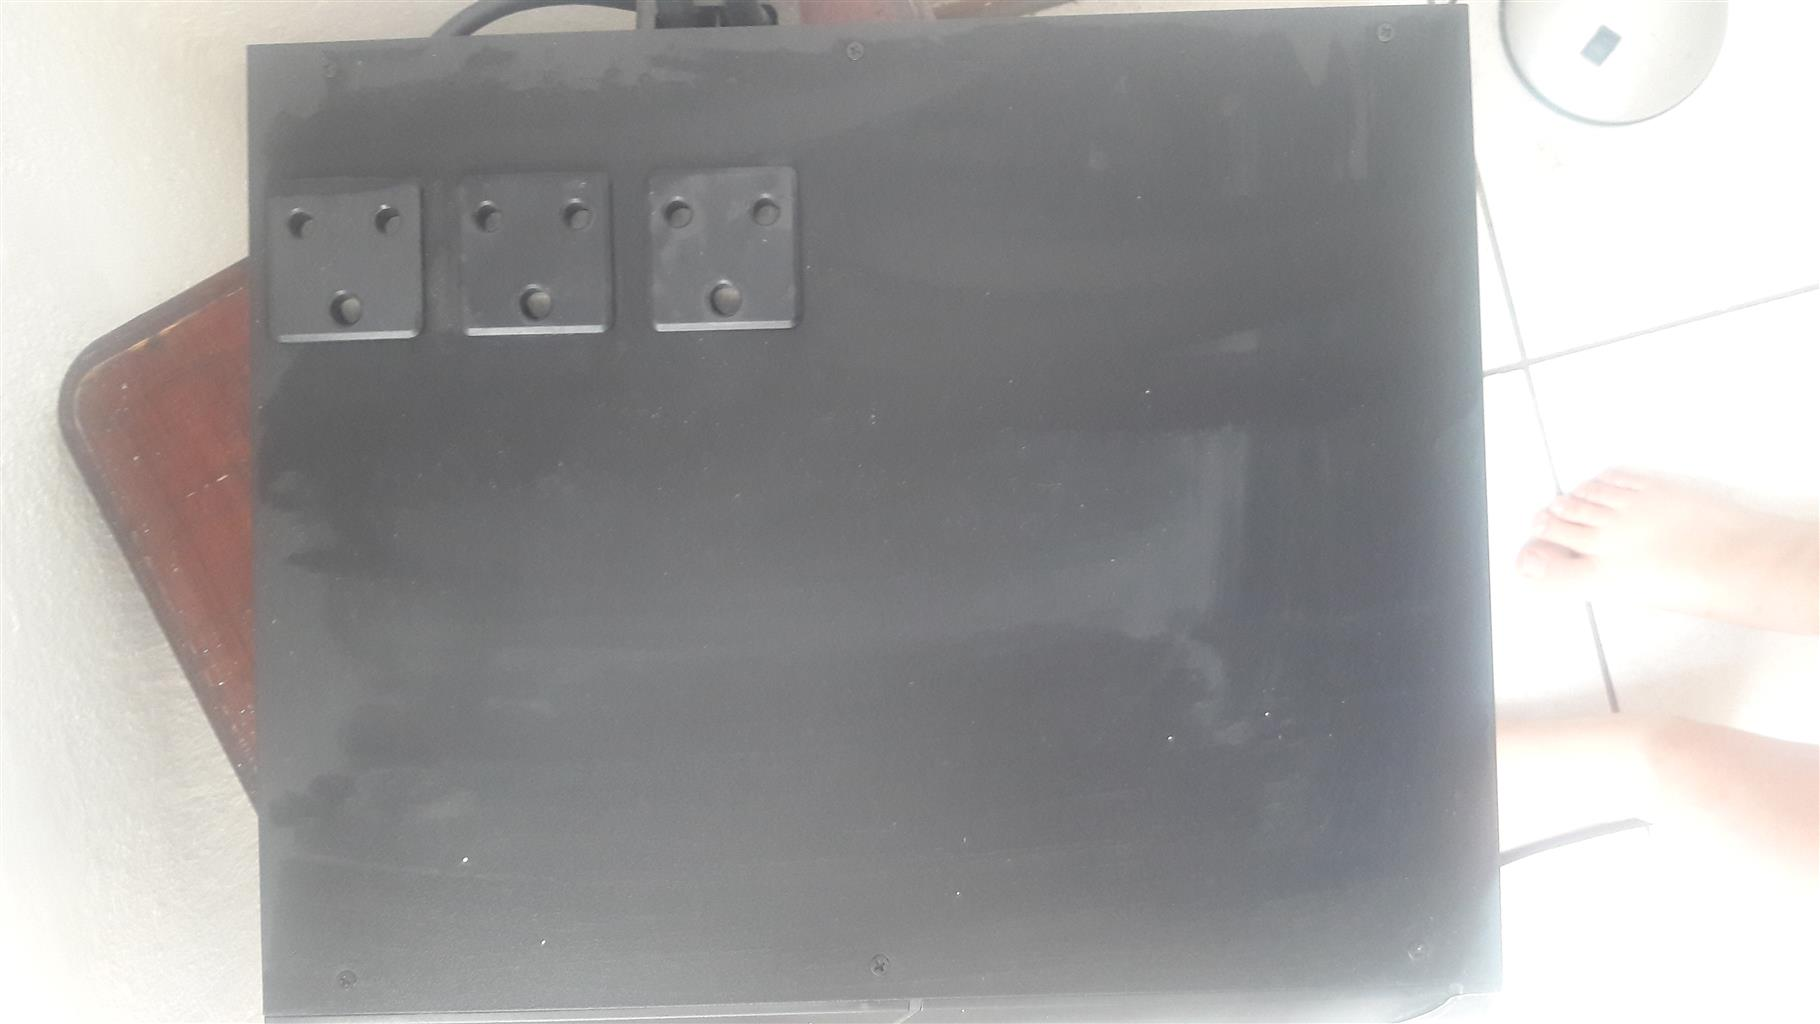 15OOW UPS power system with batteries